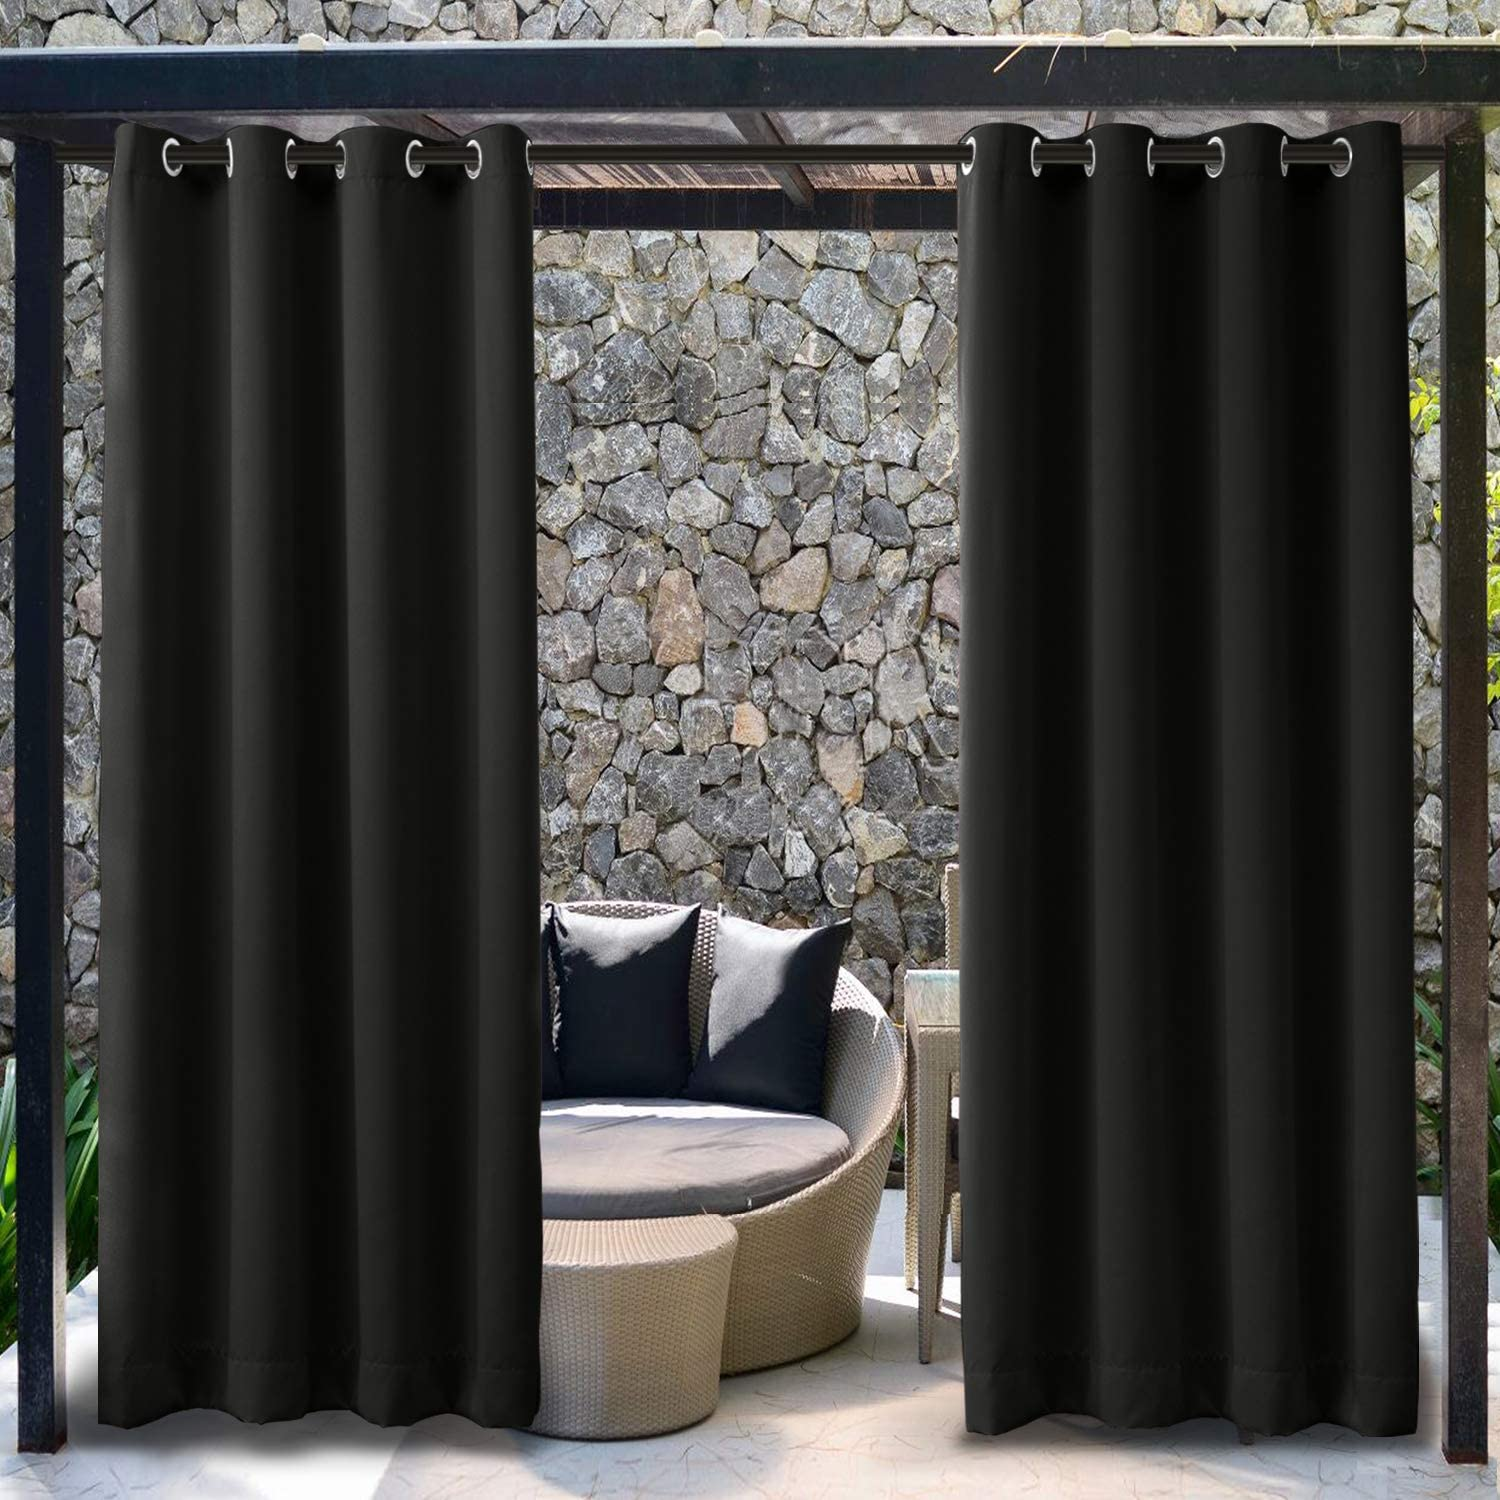 TWOPAGES Outdoor Pavilion Black Curtain Extra Wide Waterproof Curtain with Rustproof Grommet, Blackout Privacy Drape (1 Panel, 150 Inches Wide by 96 Inches Long)